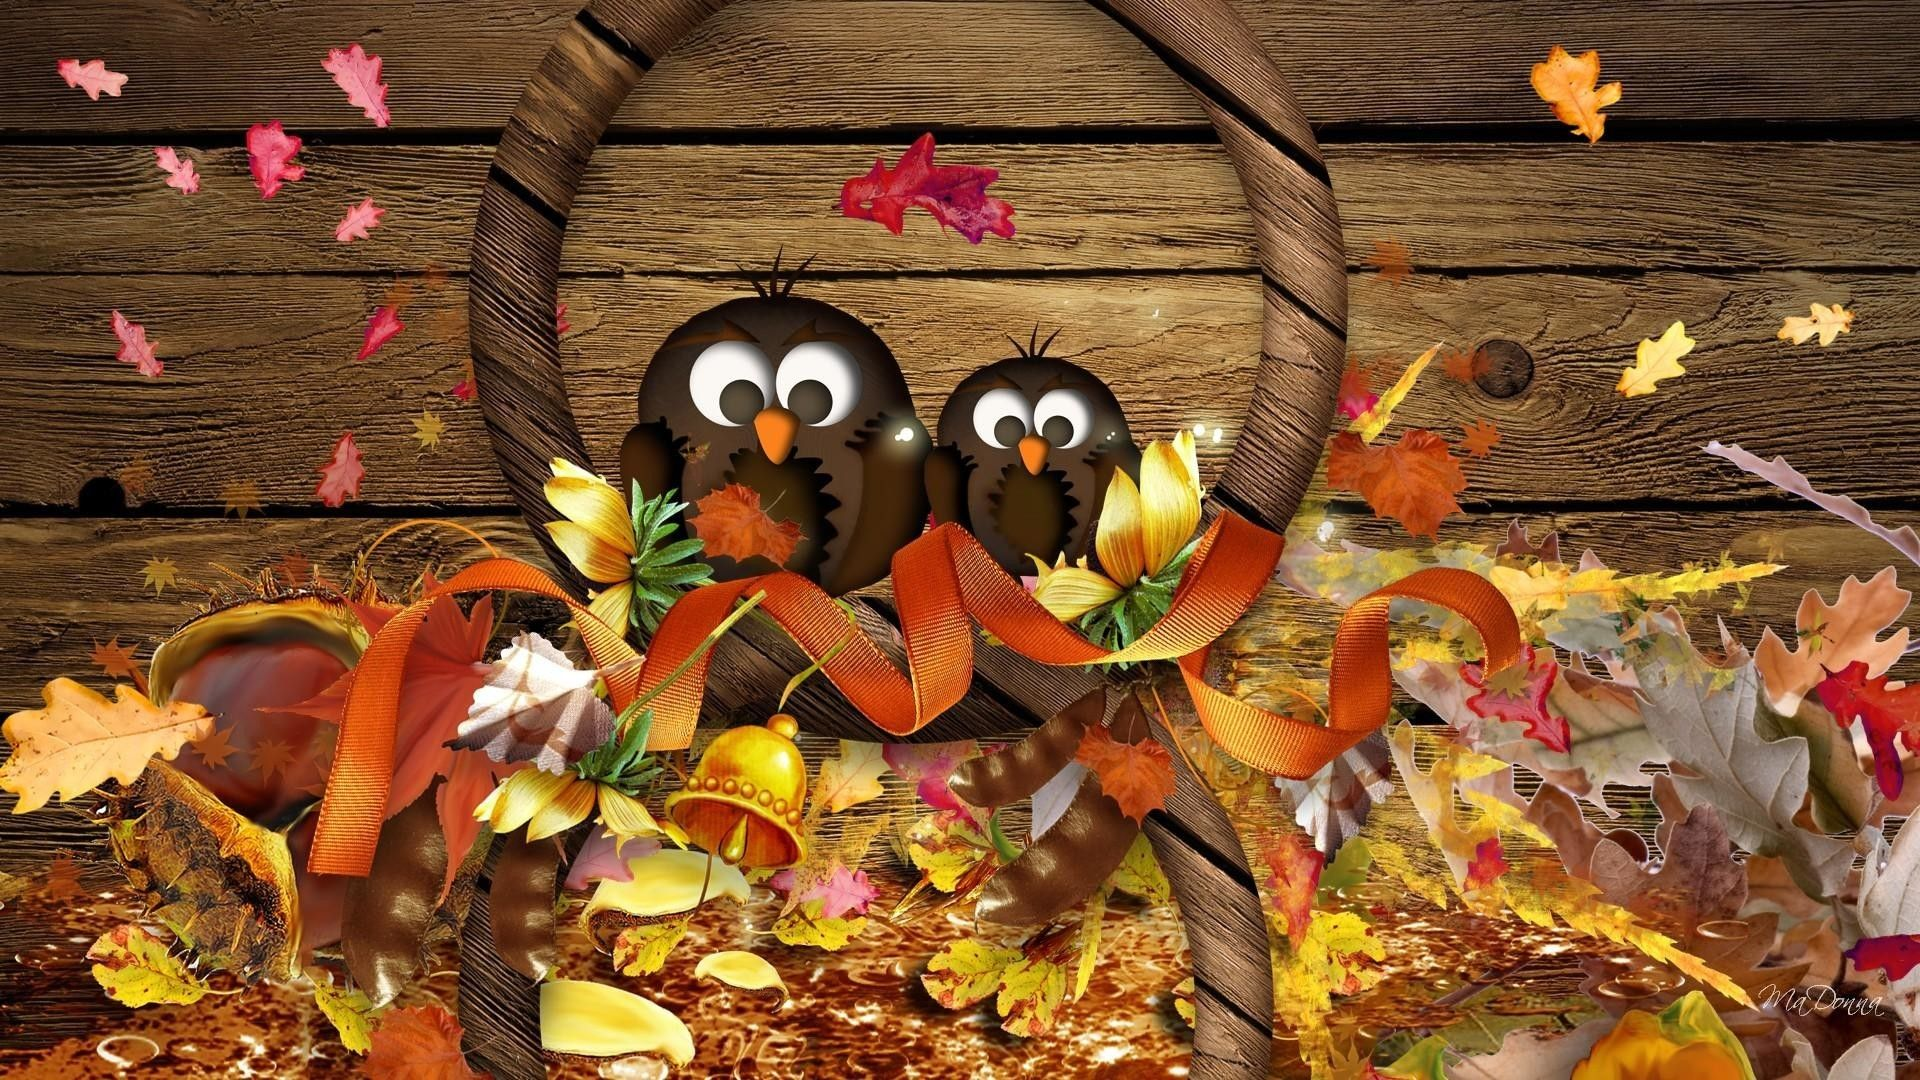 Lovely Thanksgiving Laptop Wallpaper #happyfallyallwallpaper